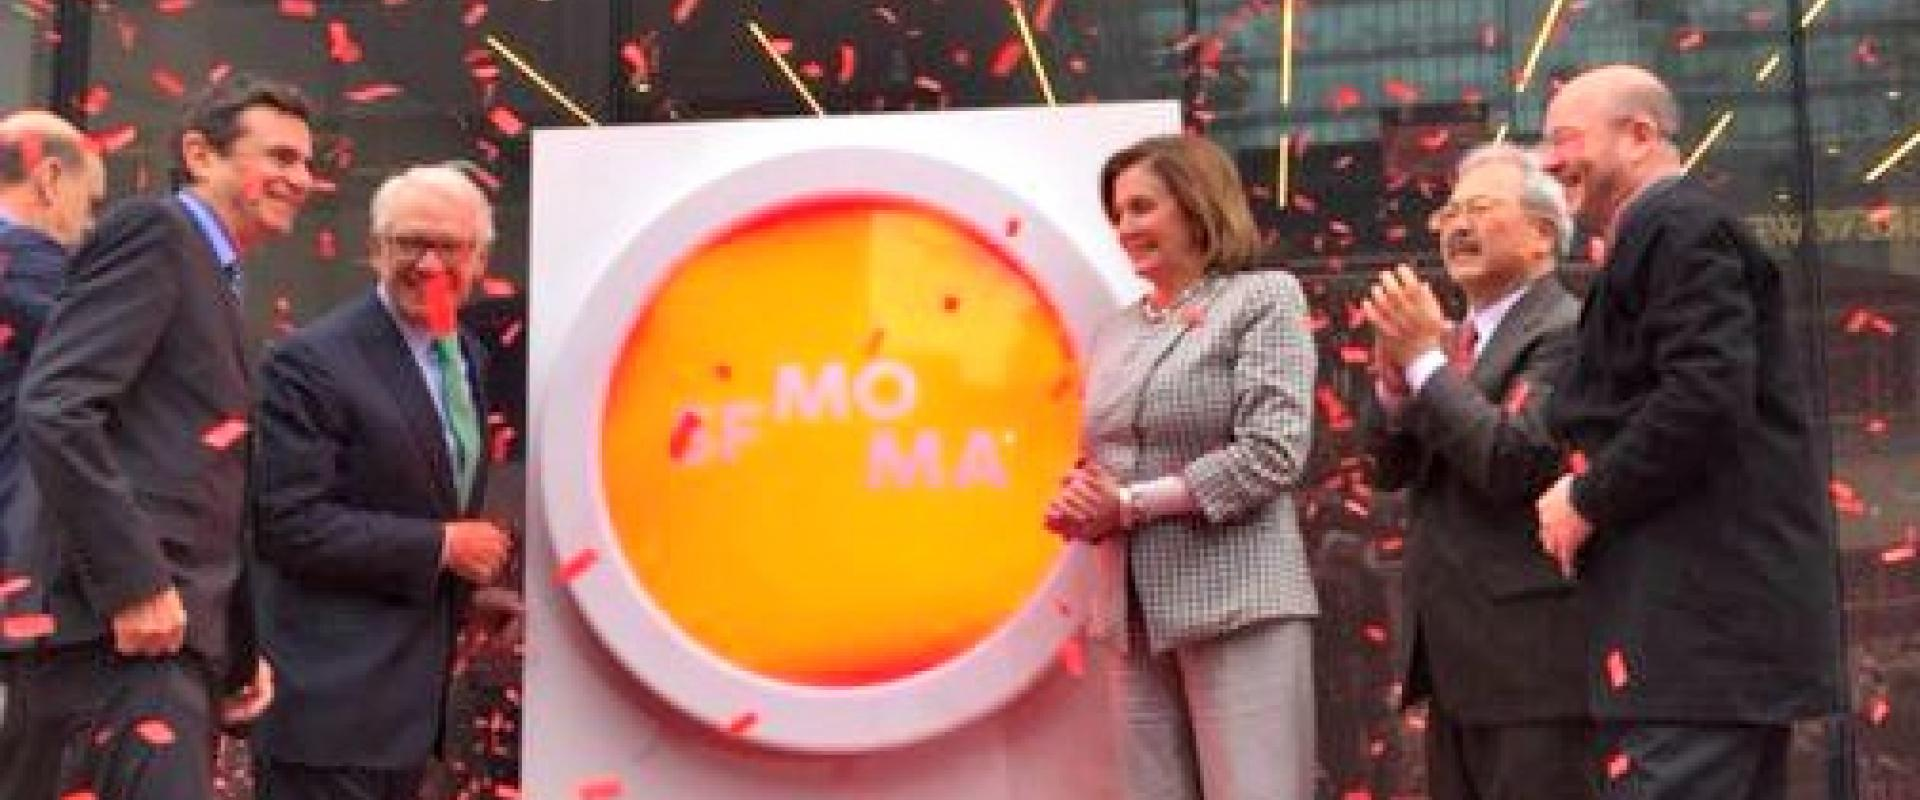 Congresswoman Nancy Pelosi joins The San Francisco Museum of Modern Art as it opens its doors to the public following a three-year expansion that nearly triples its gallery space – affirming our city's place as a global leader of art and culture.